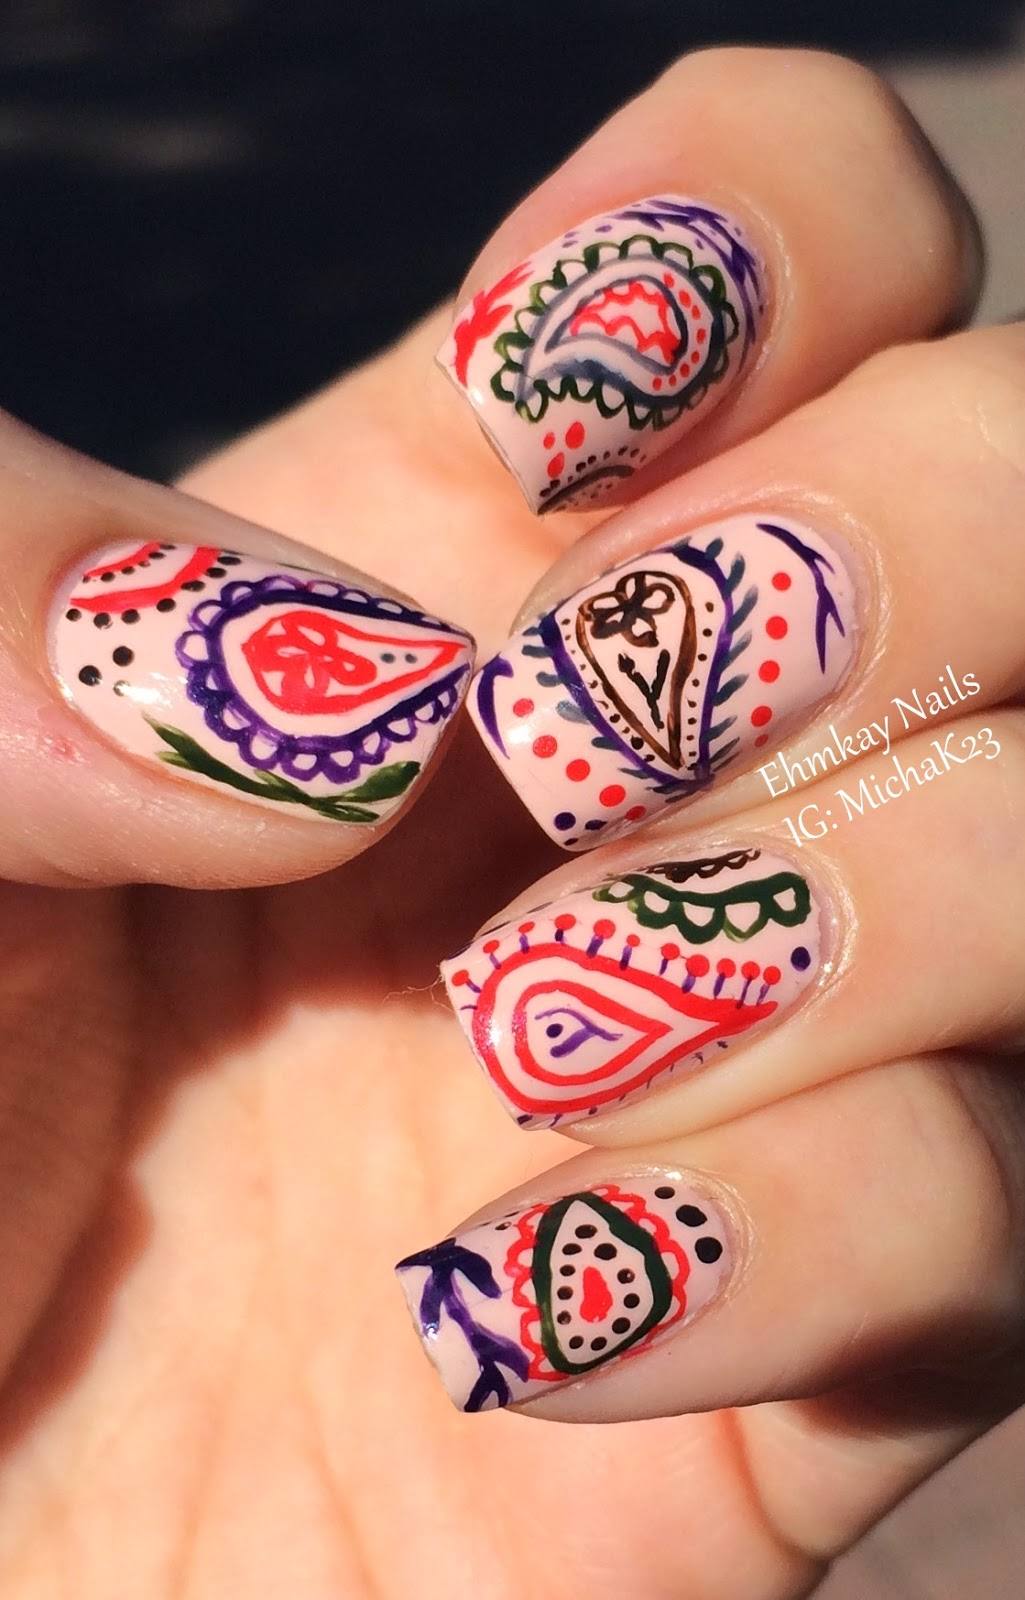 Nail Art Ideas » New York Nail Art Designs - Pictures of Nail Art ...